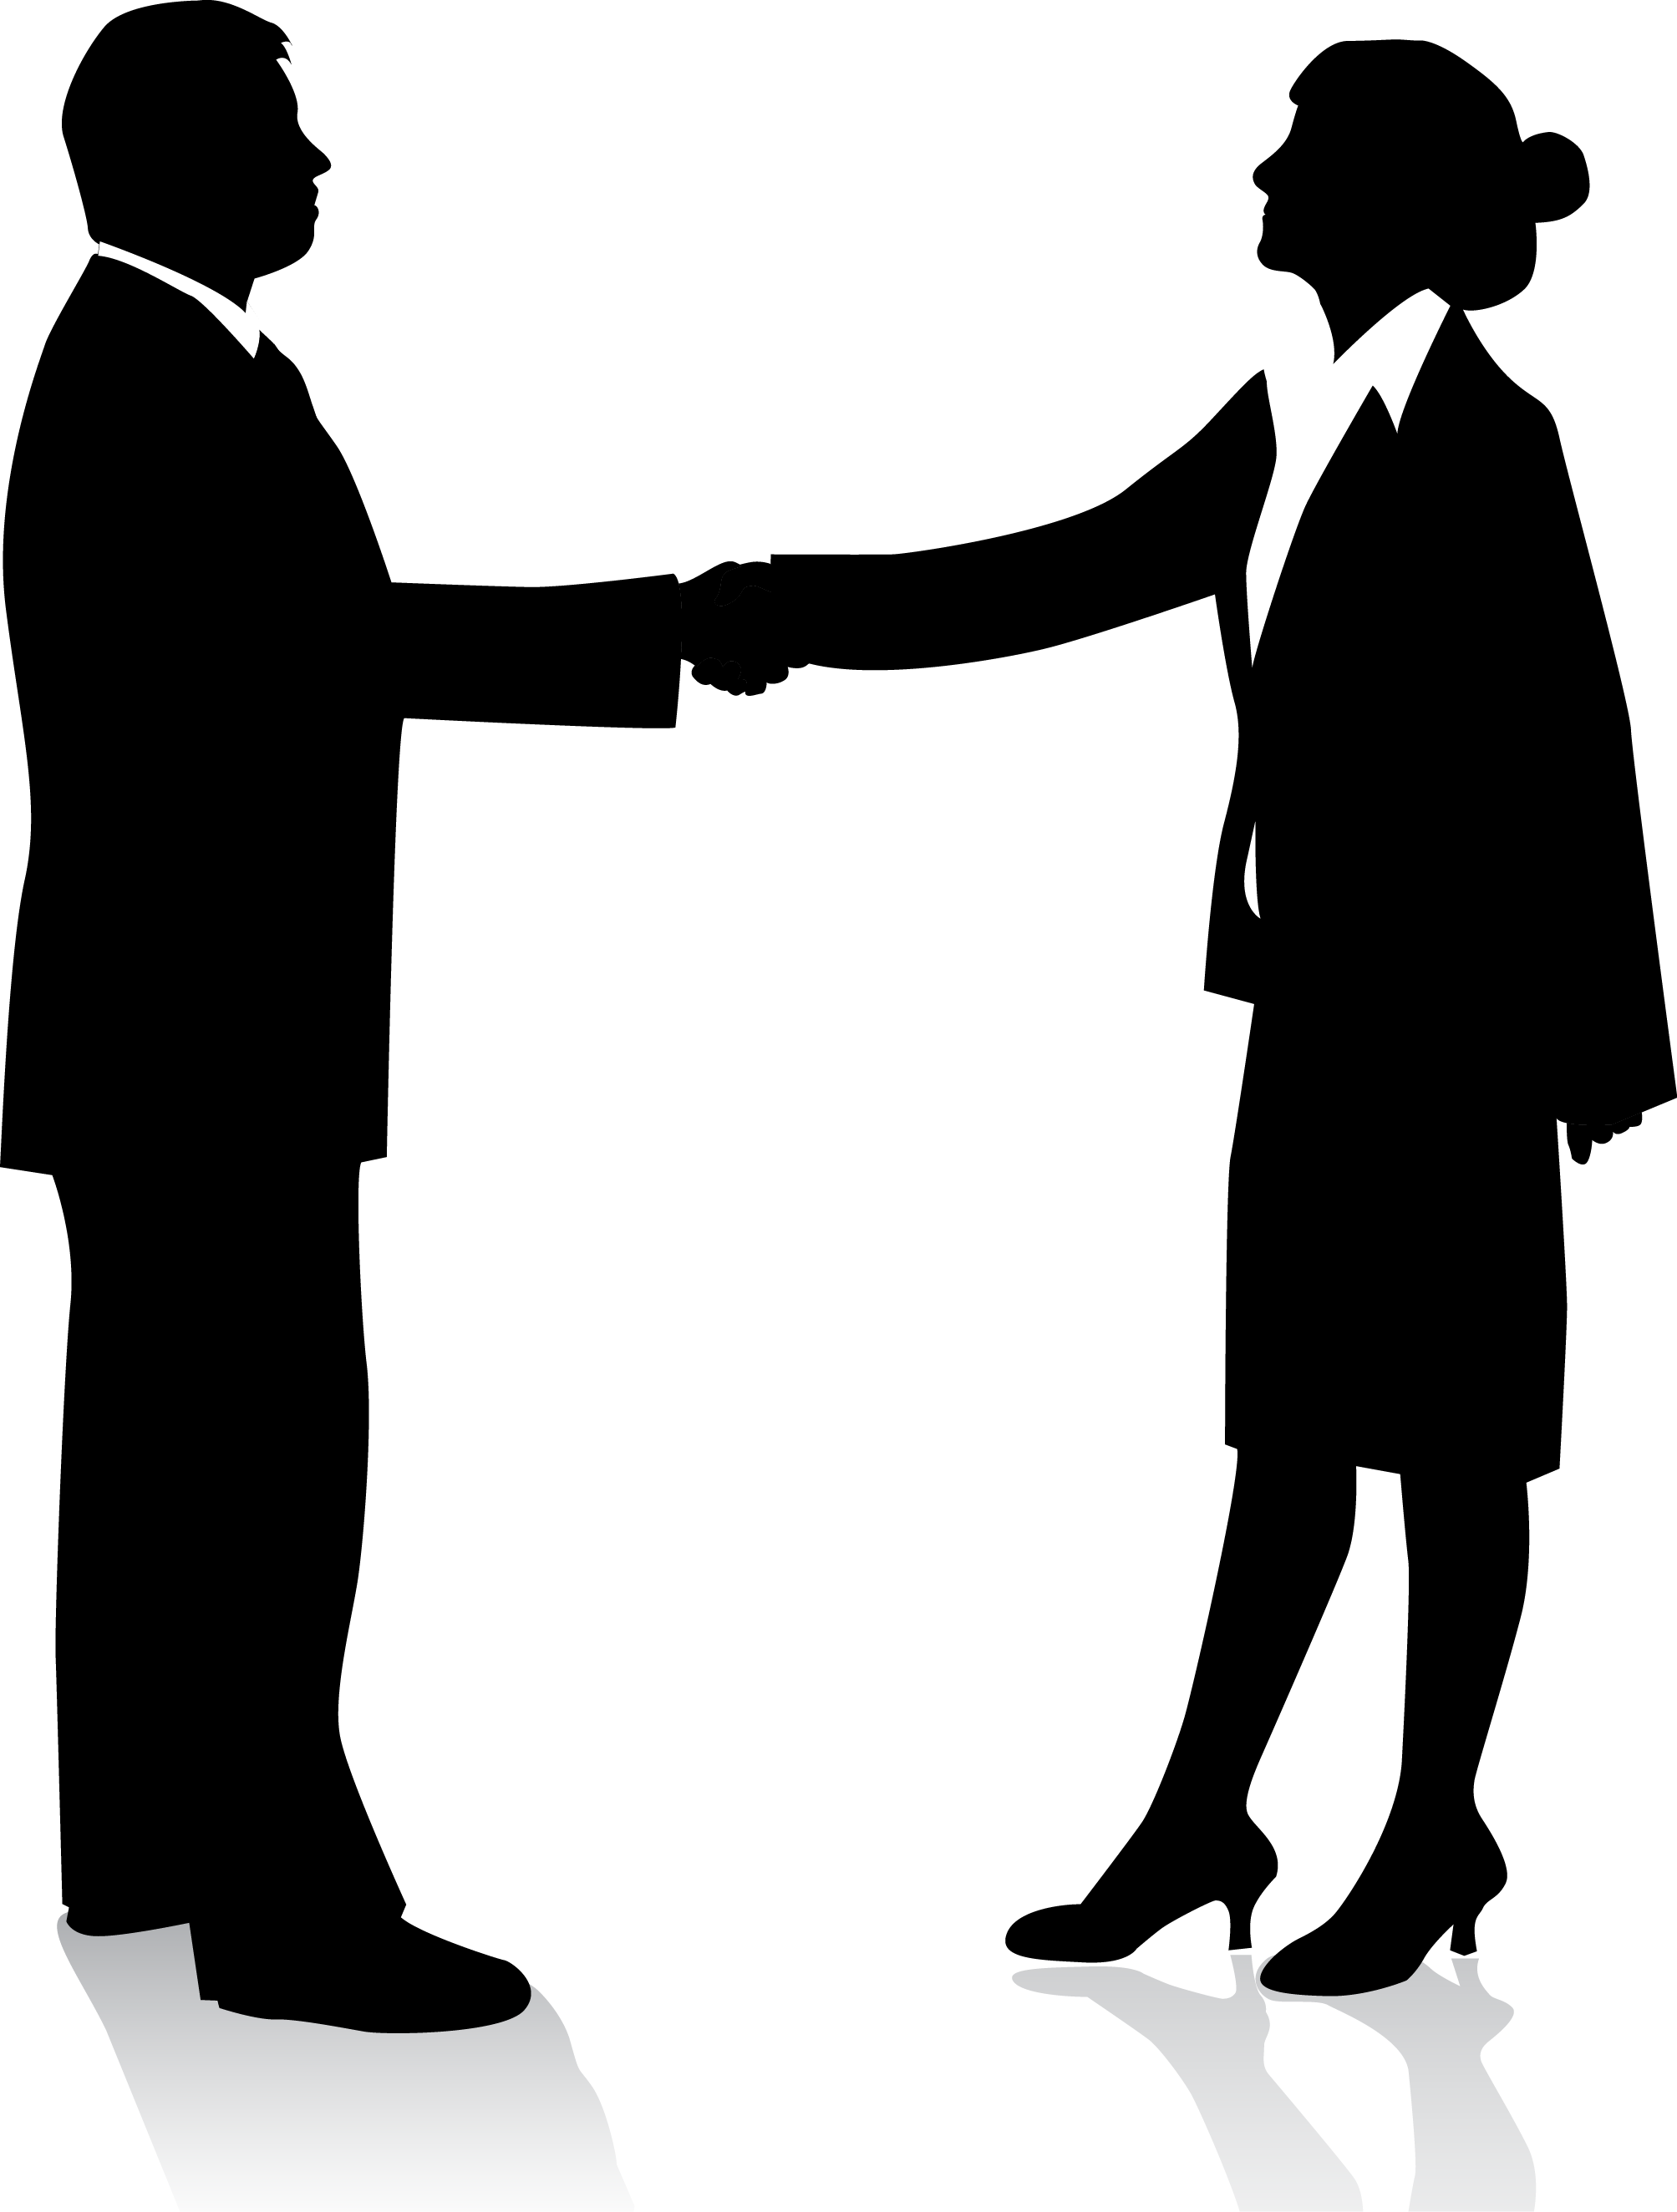 business people handshake clipart - Clipground for Business People Silhouette Png  555kxo